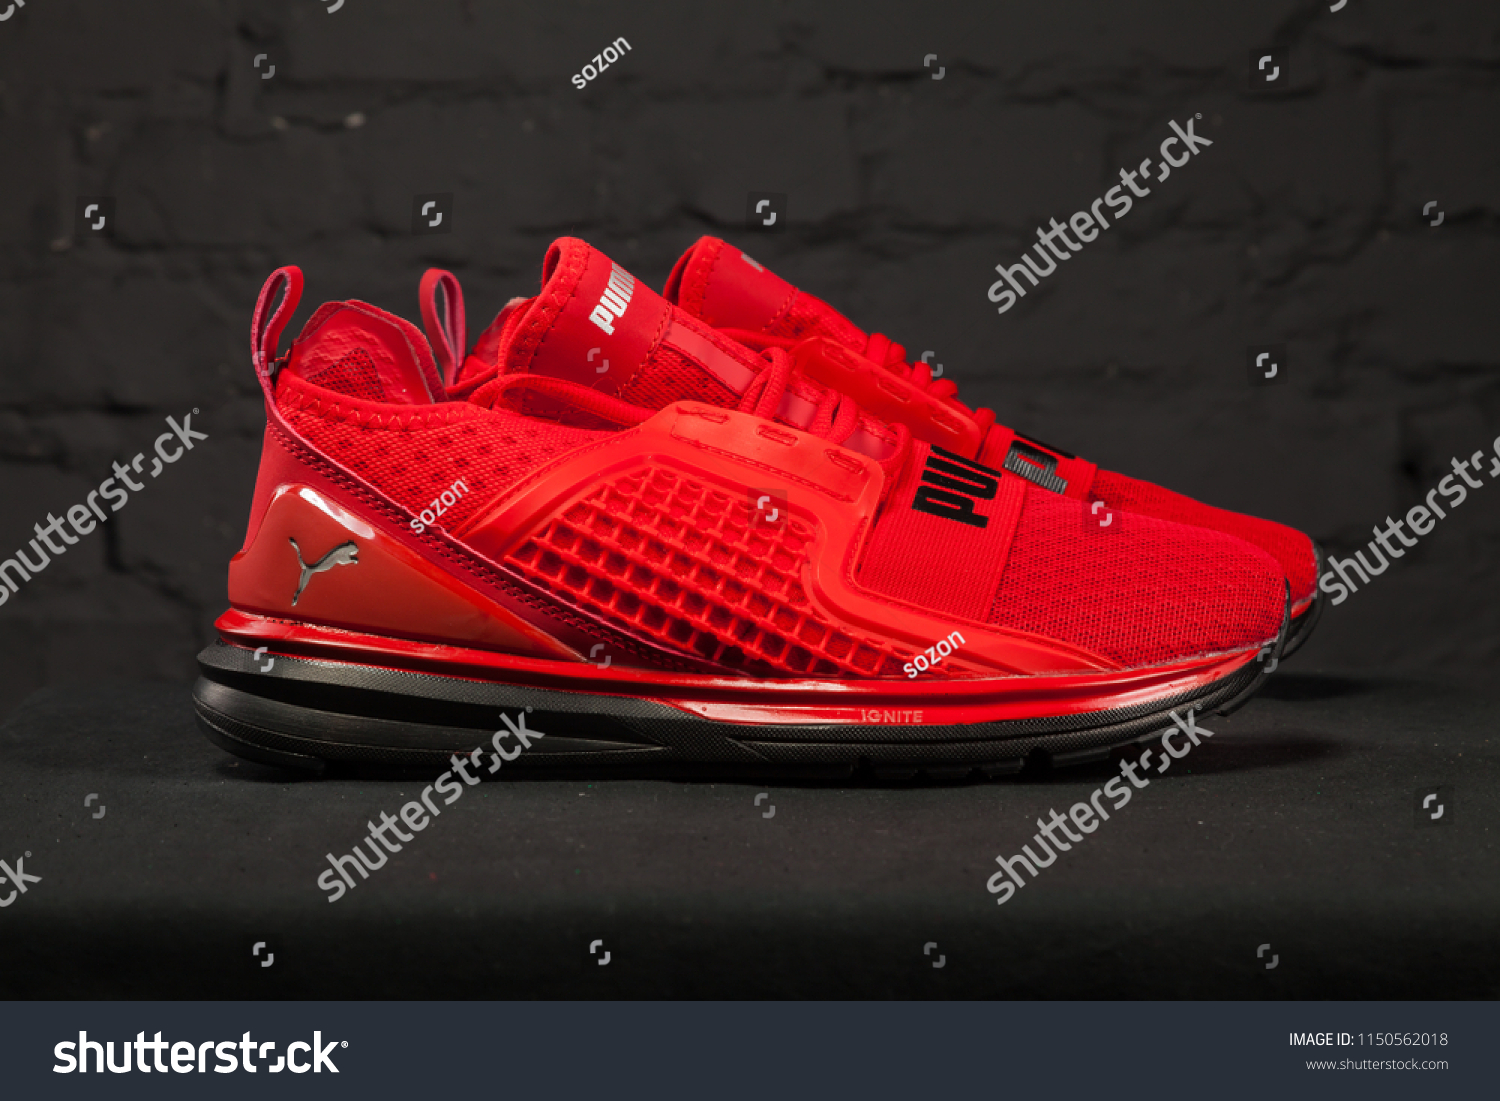 ac94f93c398 New beautiful colorful and nice Puma Ignite running shoes, sneakers,  trainers shows the logo.